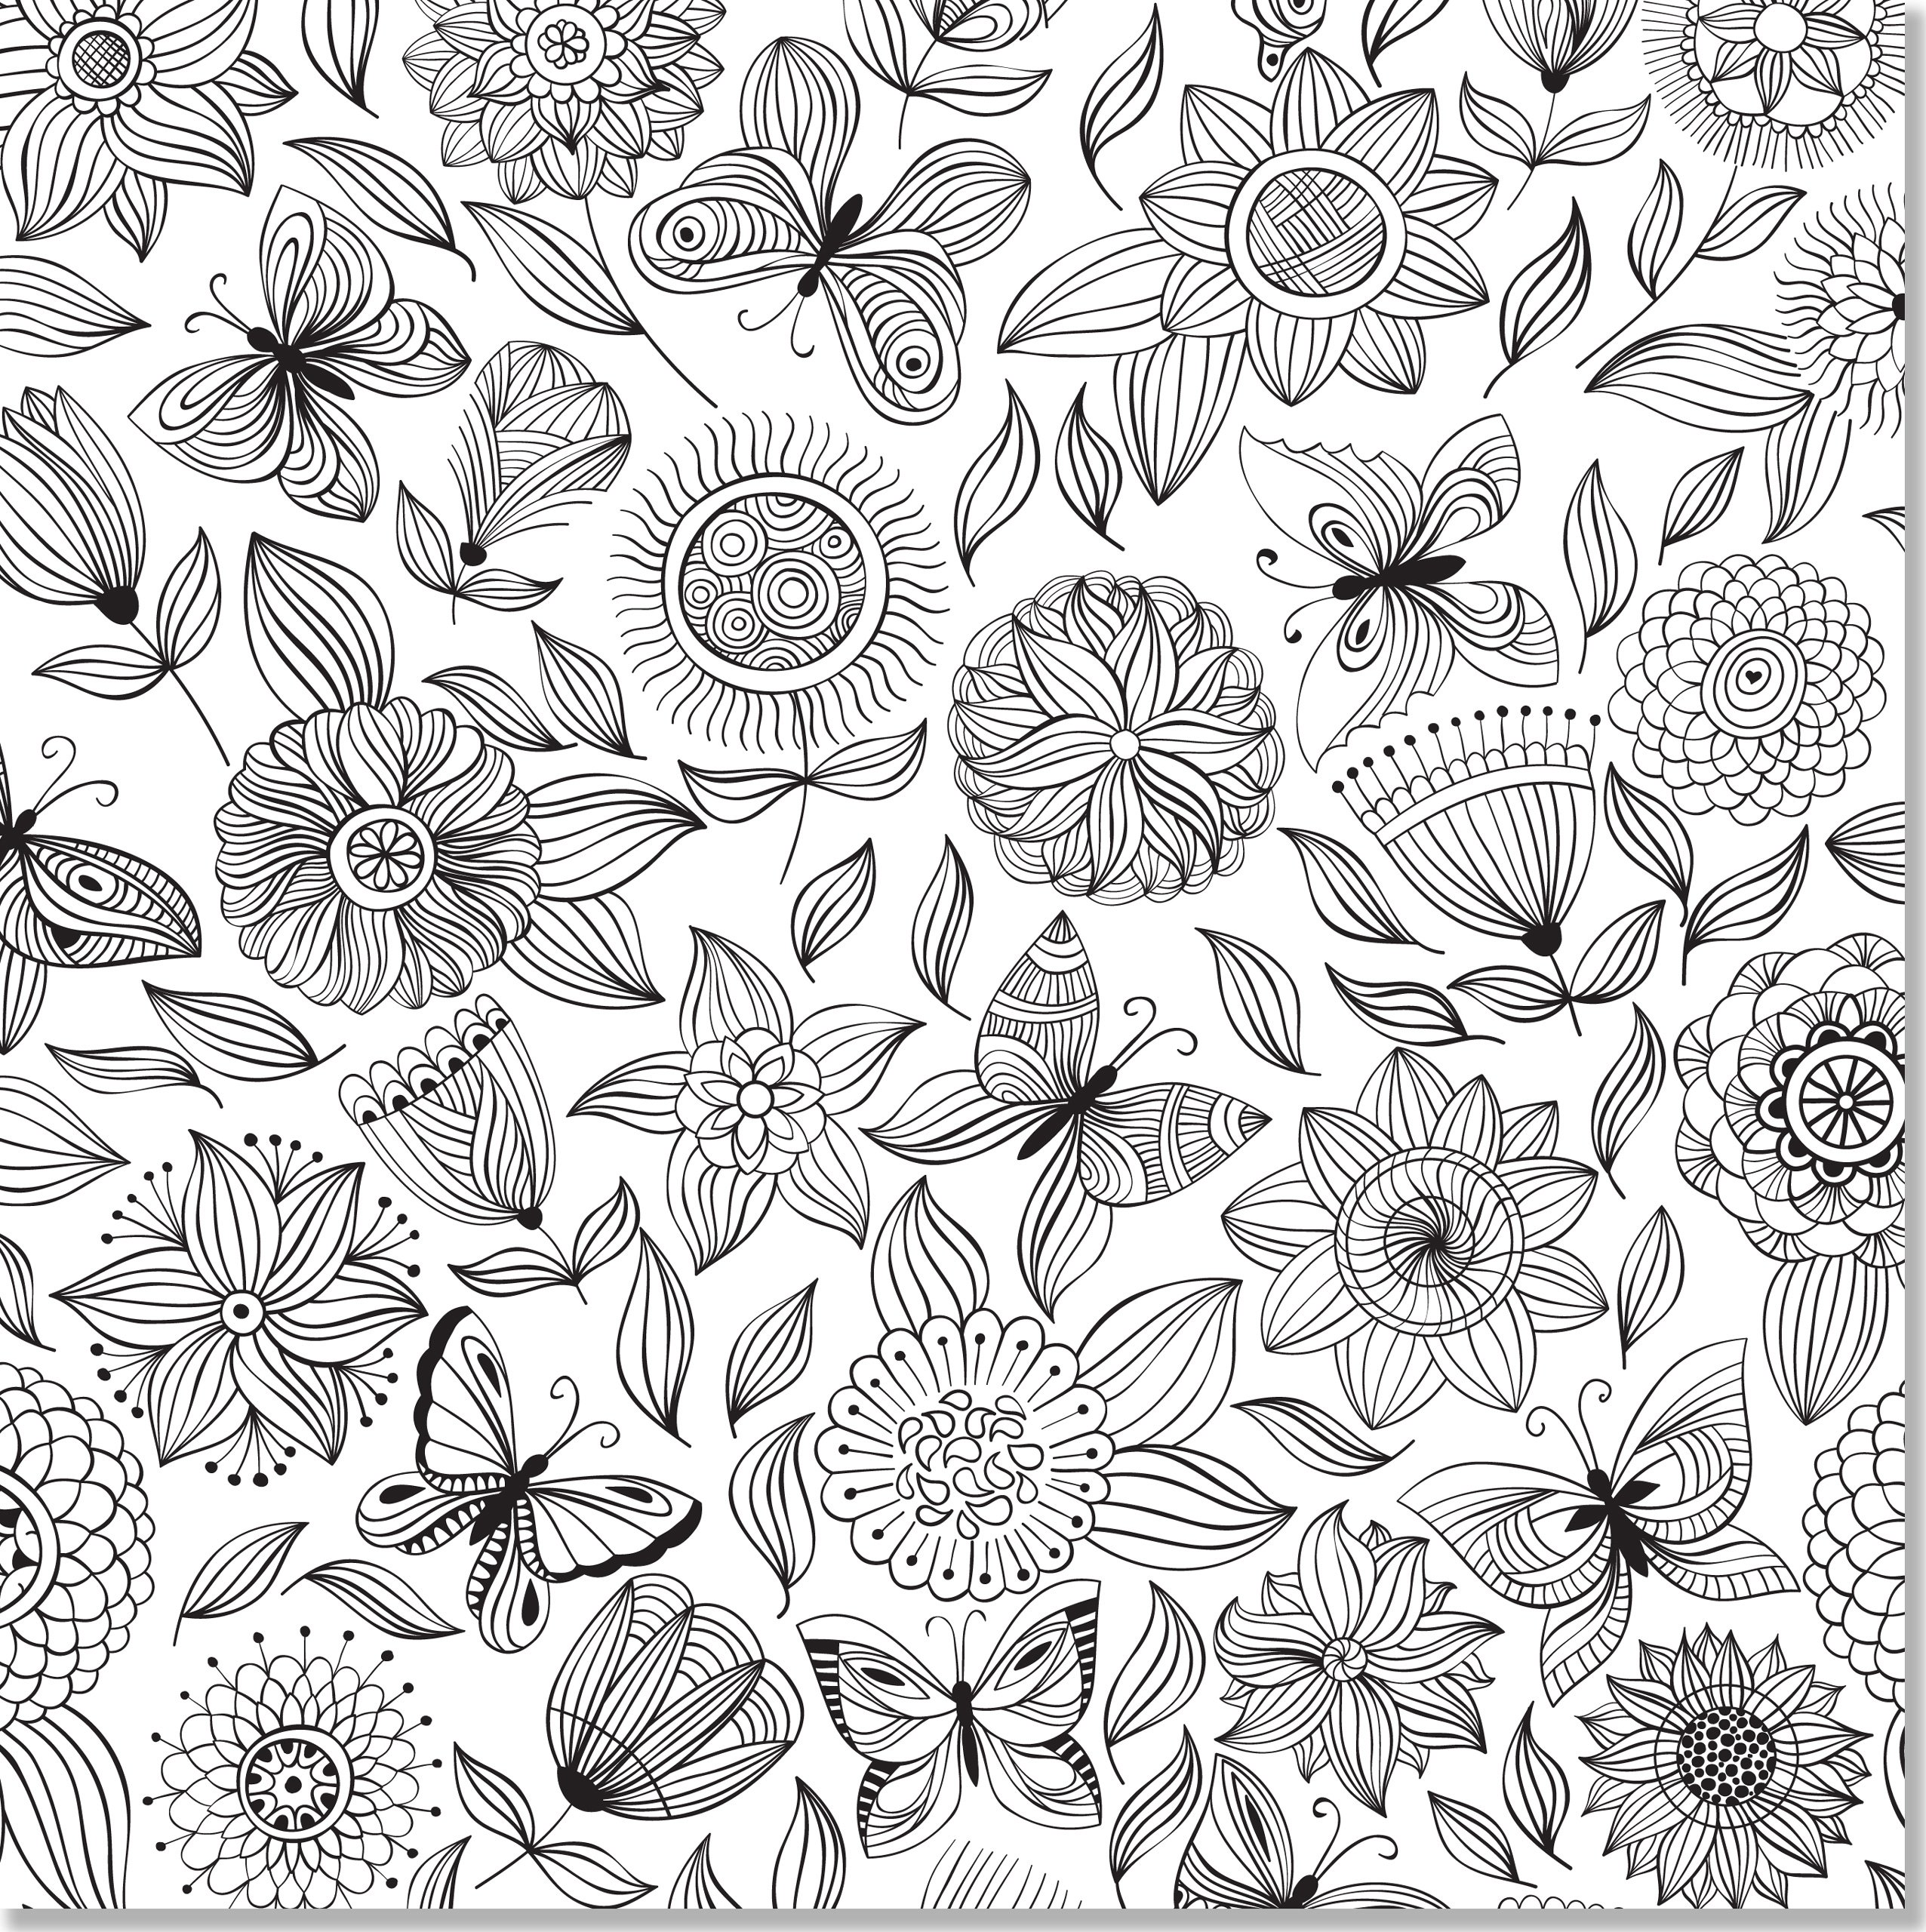 amazoncom floral designs adult coloring book 31 stress relieving designs studio 9781441317452 peter pauper press books